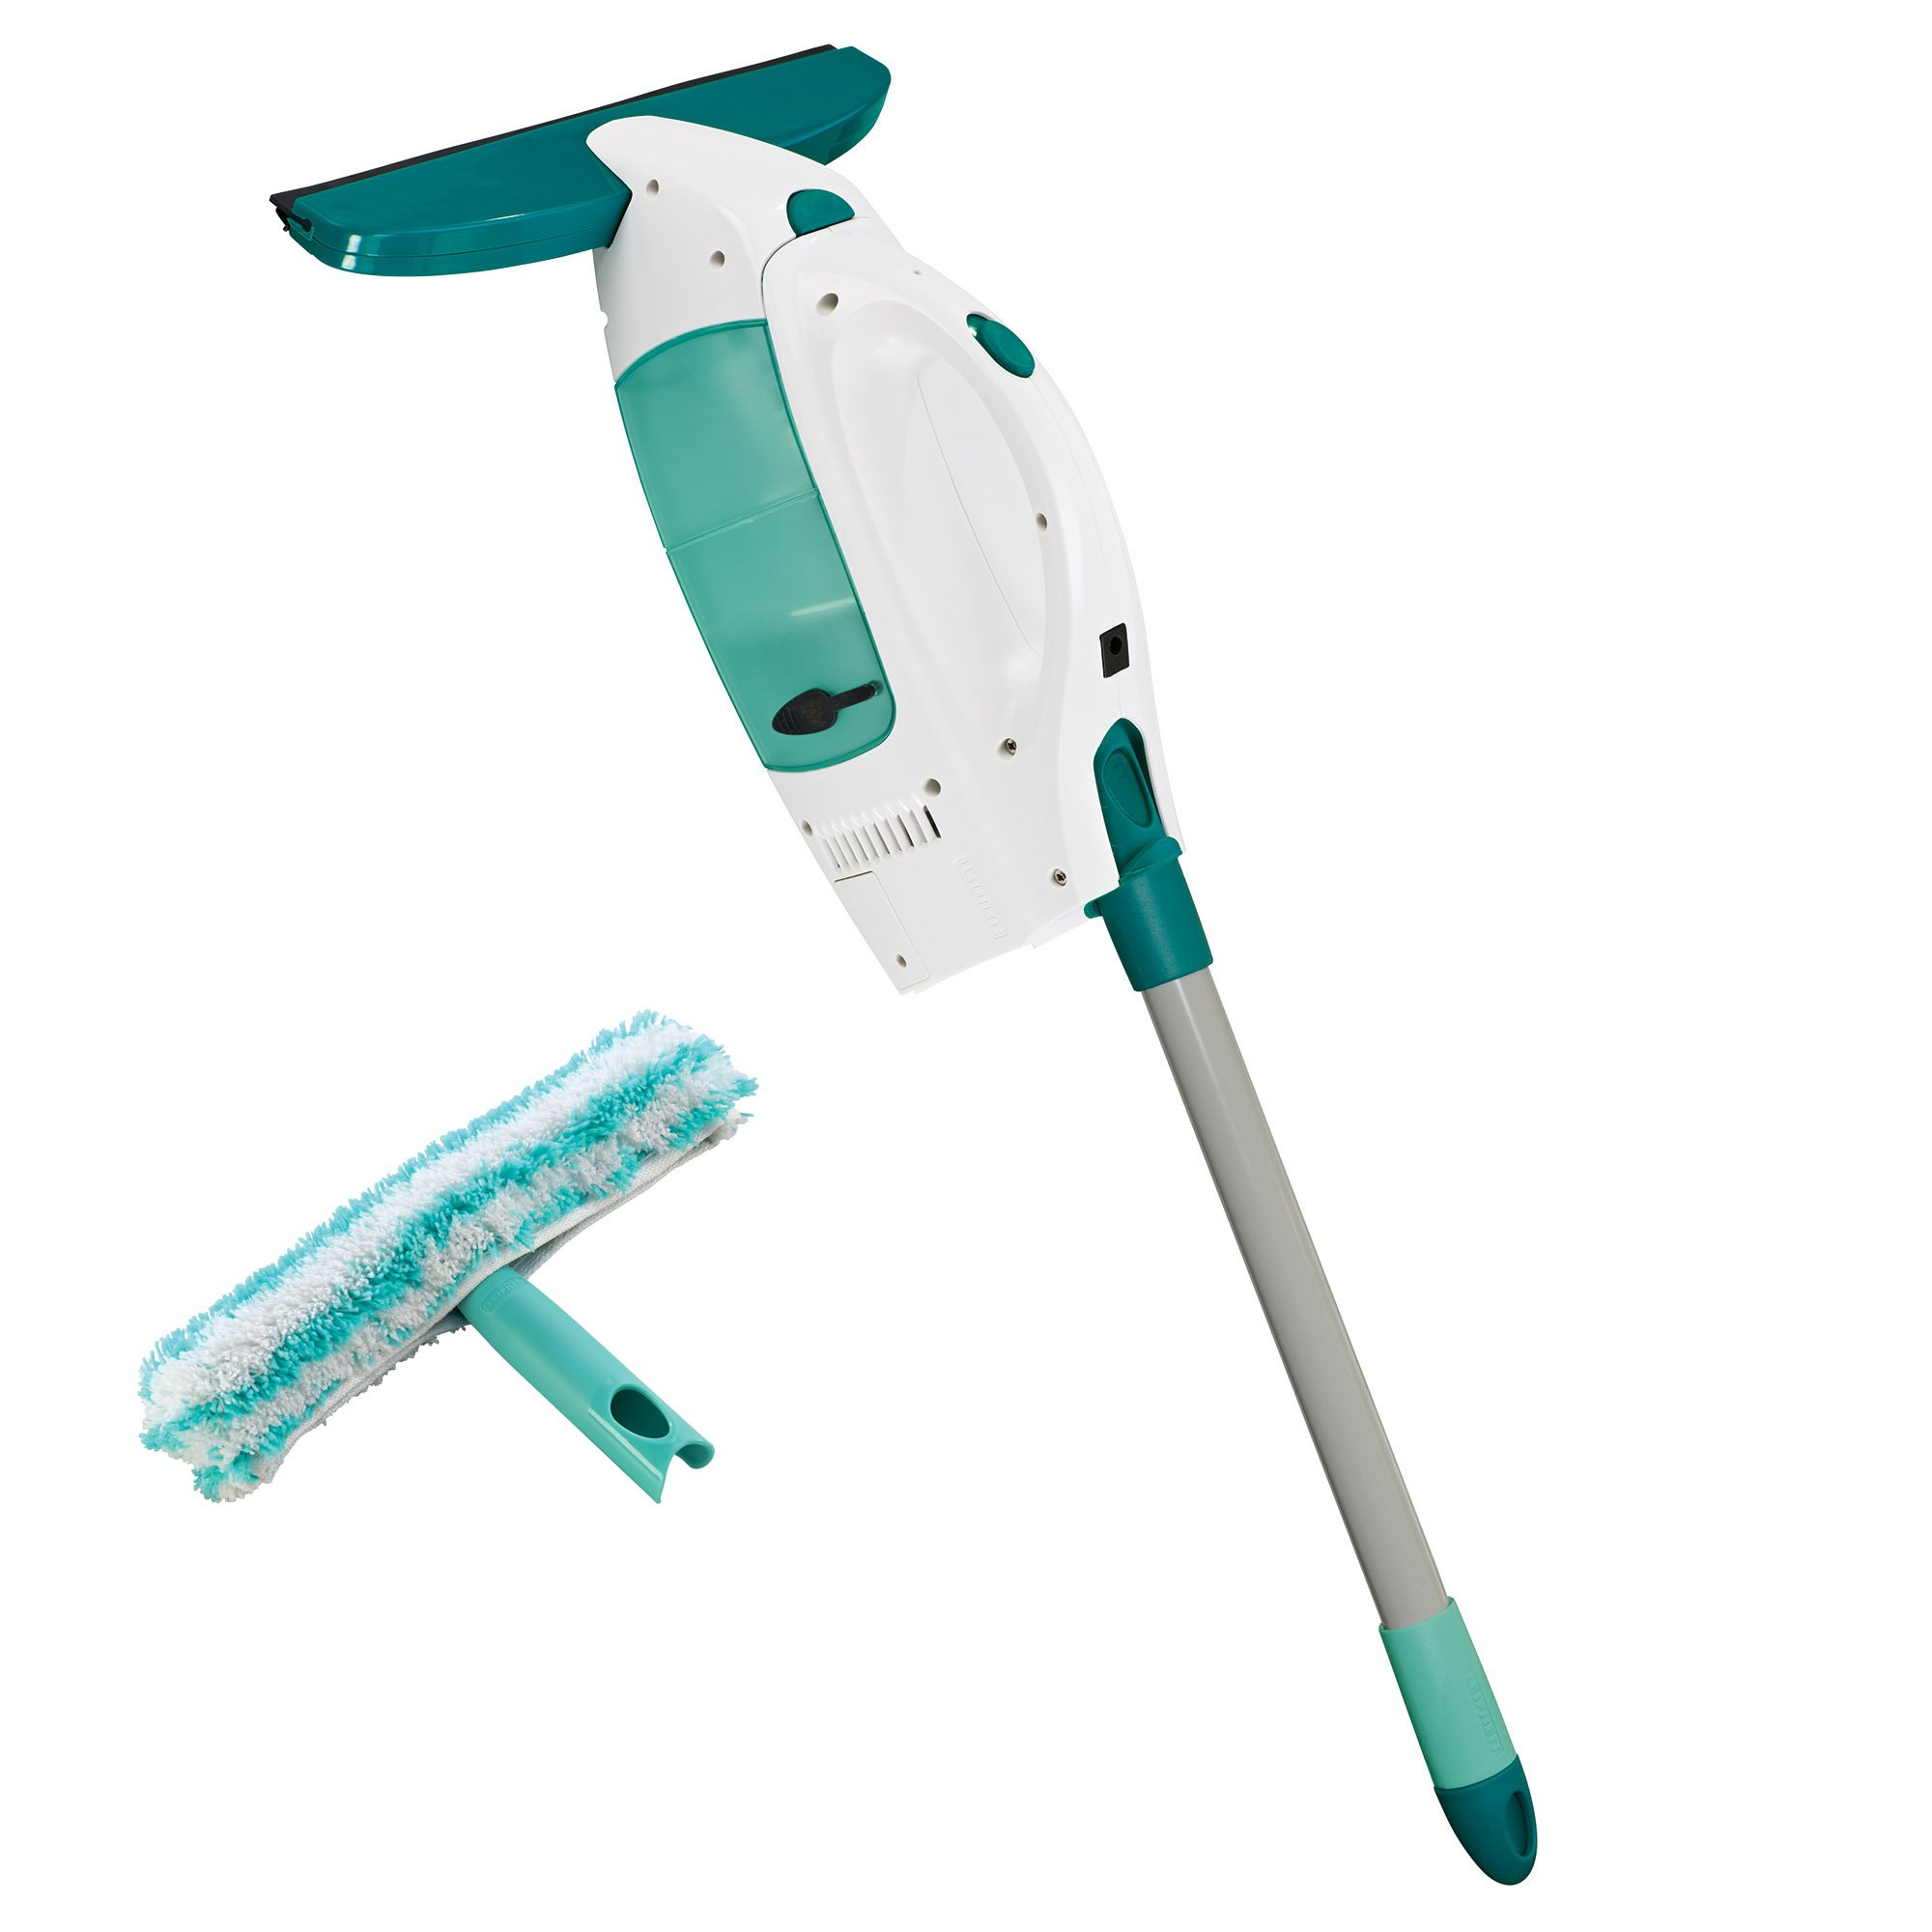 Leifheit 51107 Click System Window Cleaning Tool Kit Vacuum Squeegee - Pole Microfiber Cleaning Pad